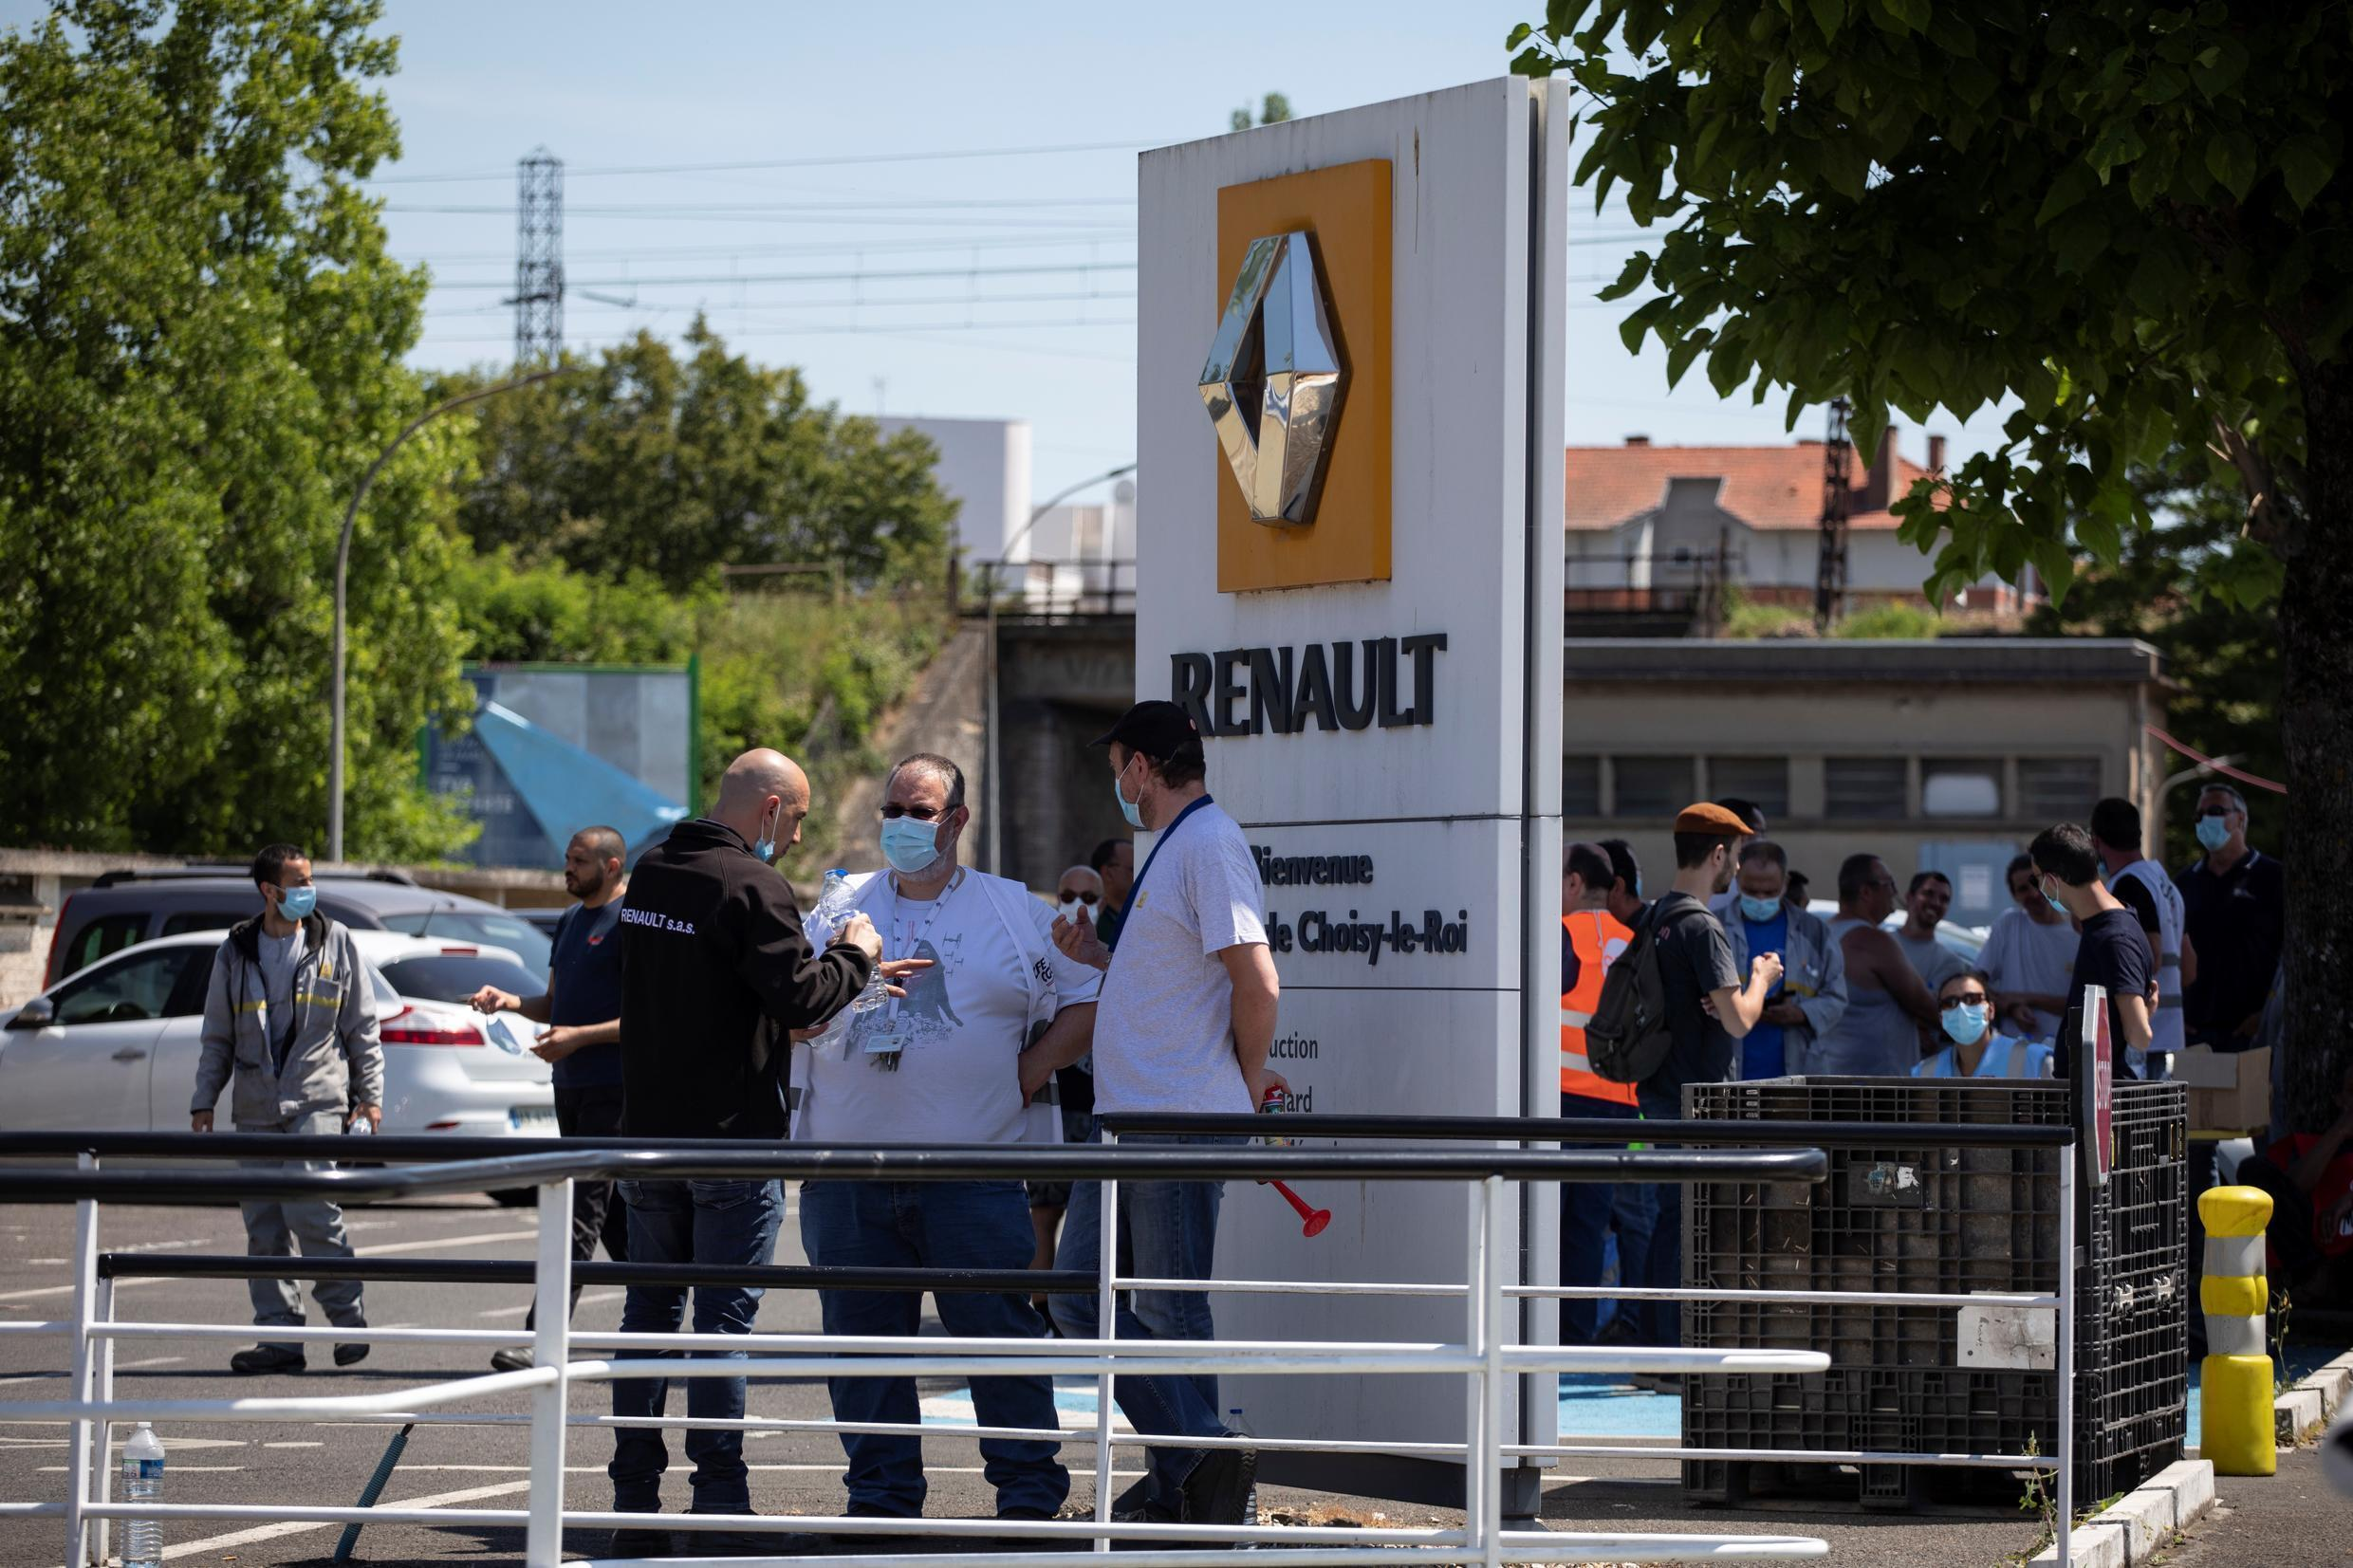 Trade union members gather outside the Renault factory in Choisy-le-Roi, near París, 2 June 2020